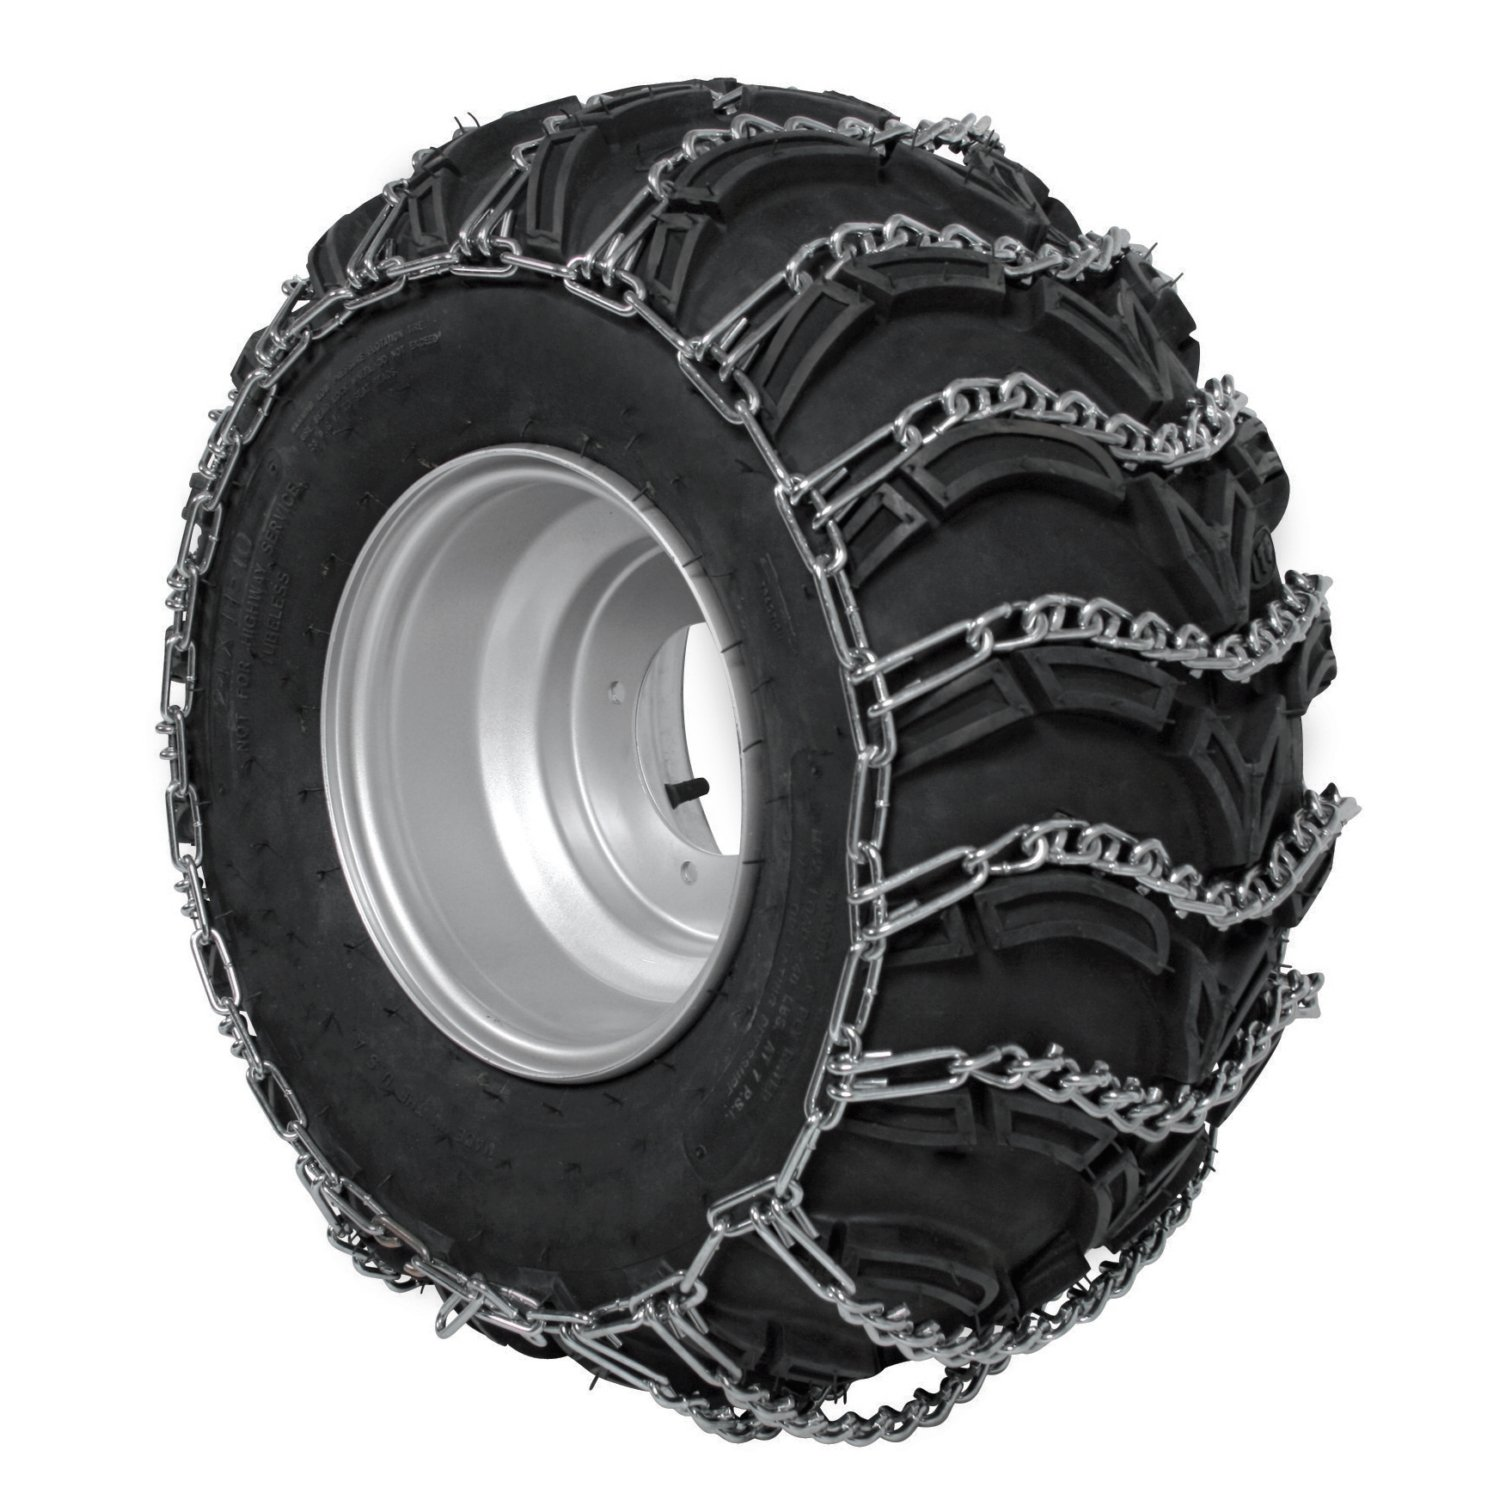 56' - 16' KIMPEX Two Spaces V-Bar Tire Chain